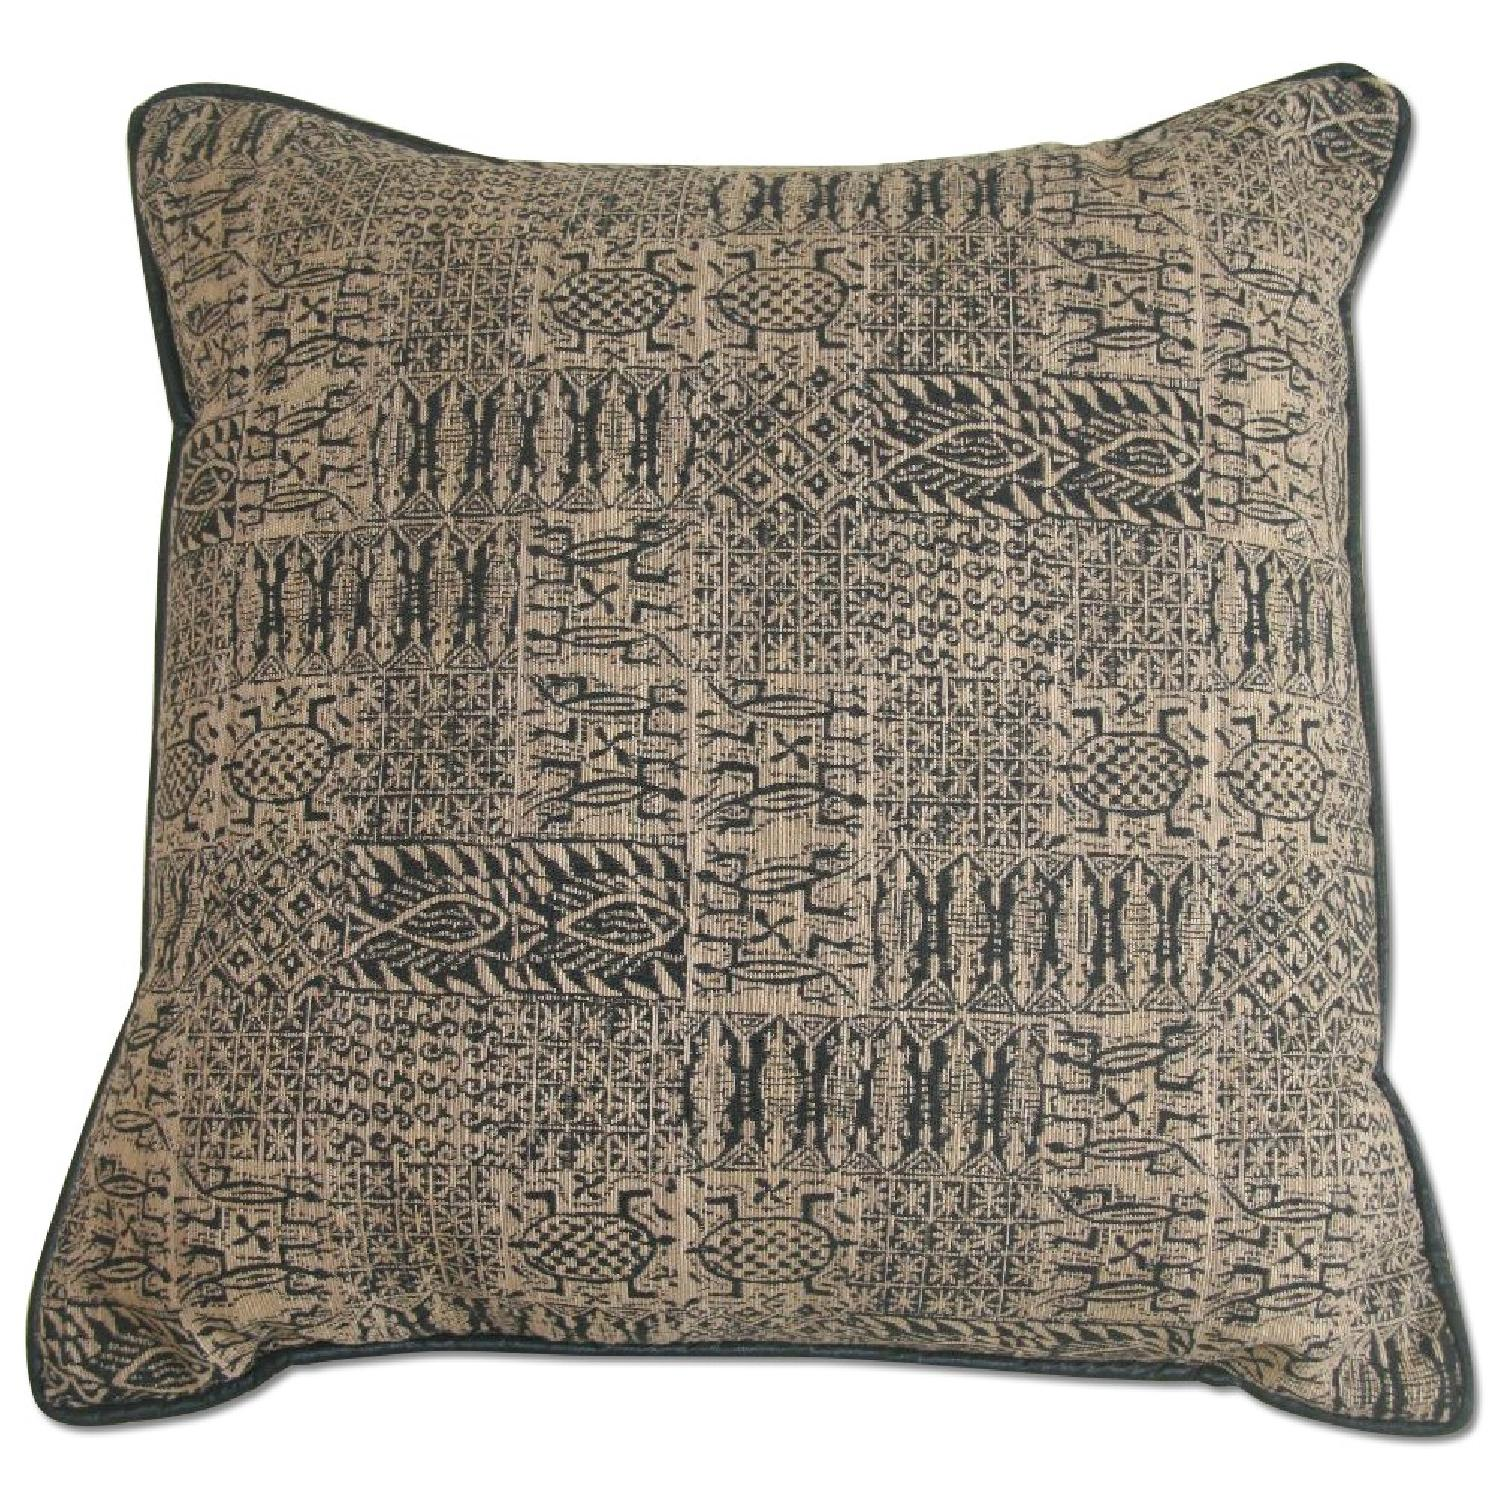 Large Pillows In Black & Gold Print - 2 Available - image-0